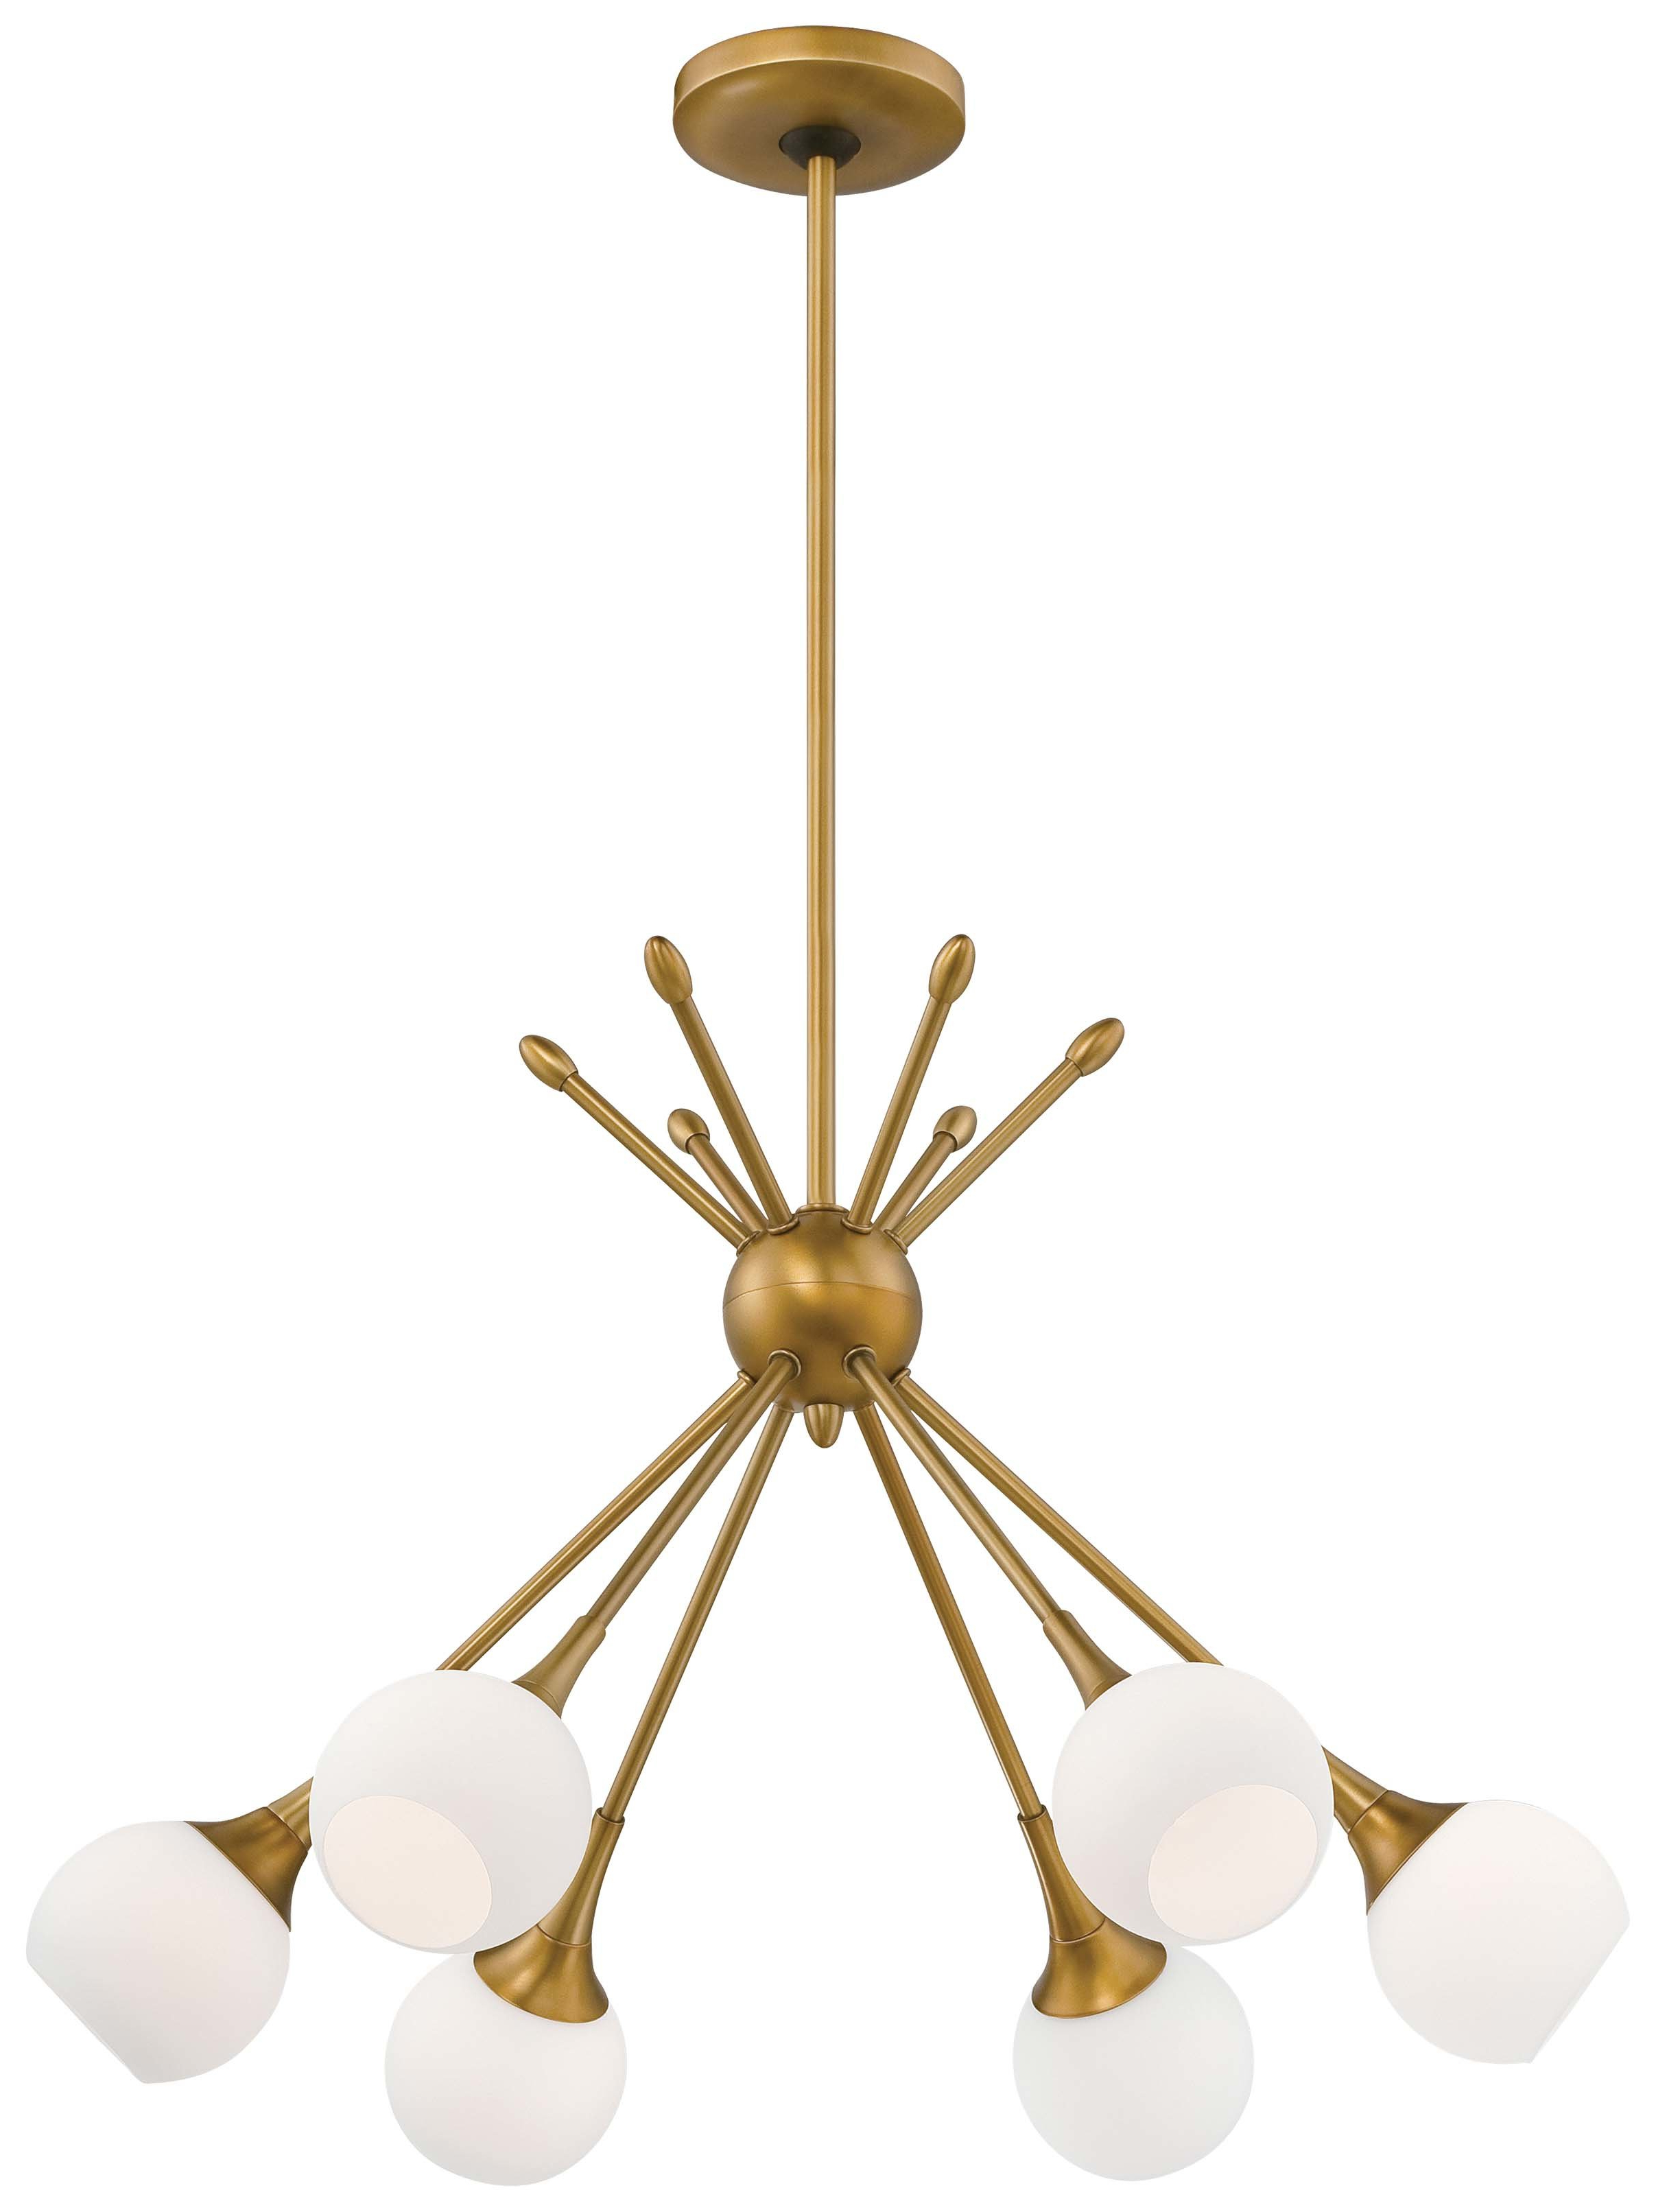 Bautista 6-Light Sputnik Chandeliers for Fashionable Silvia 6-Light Sputnik Chandelier